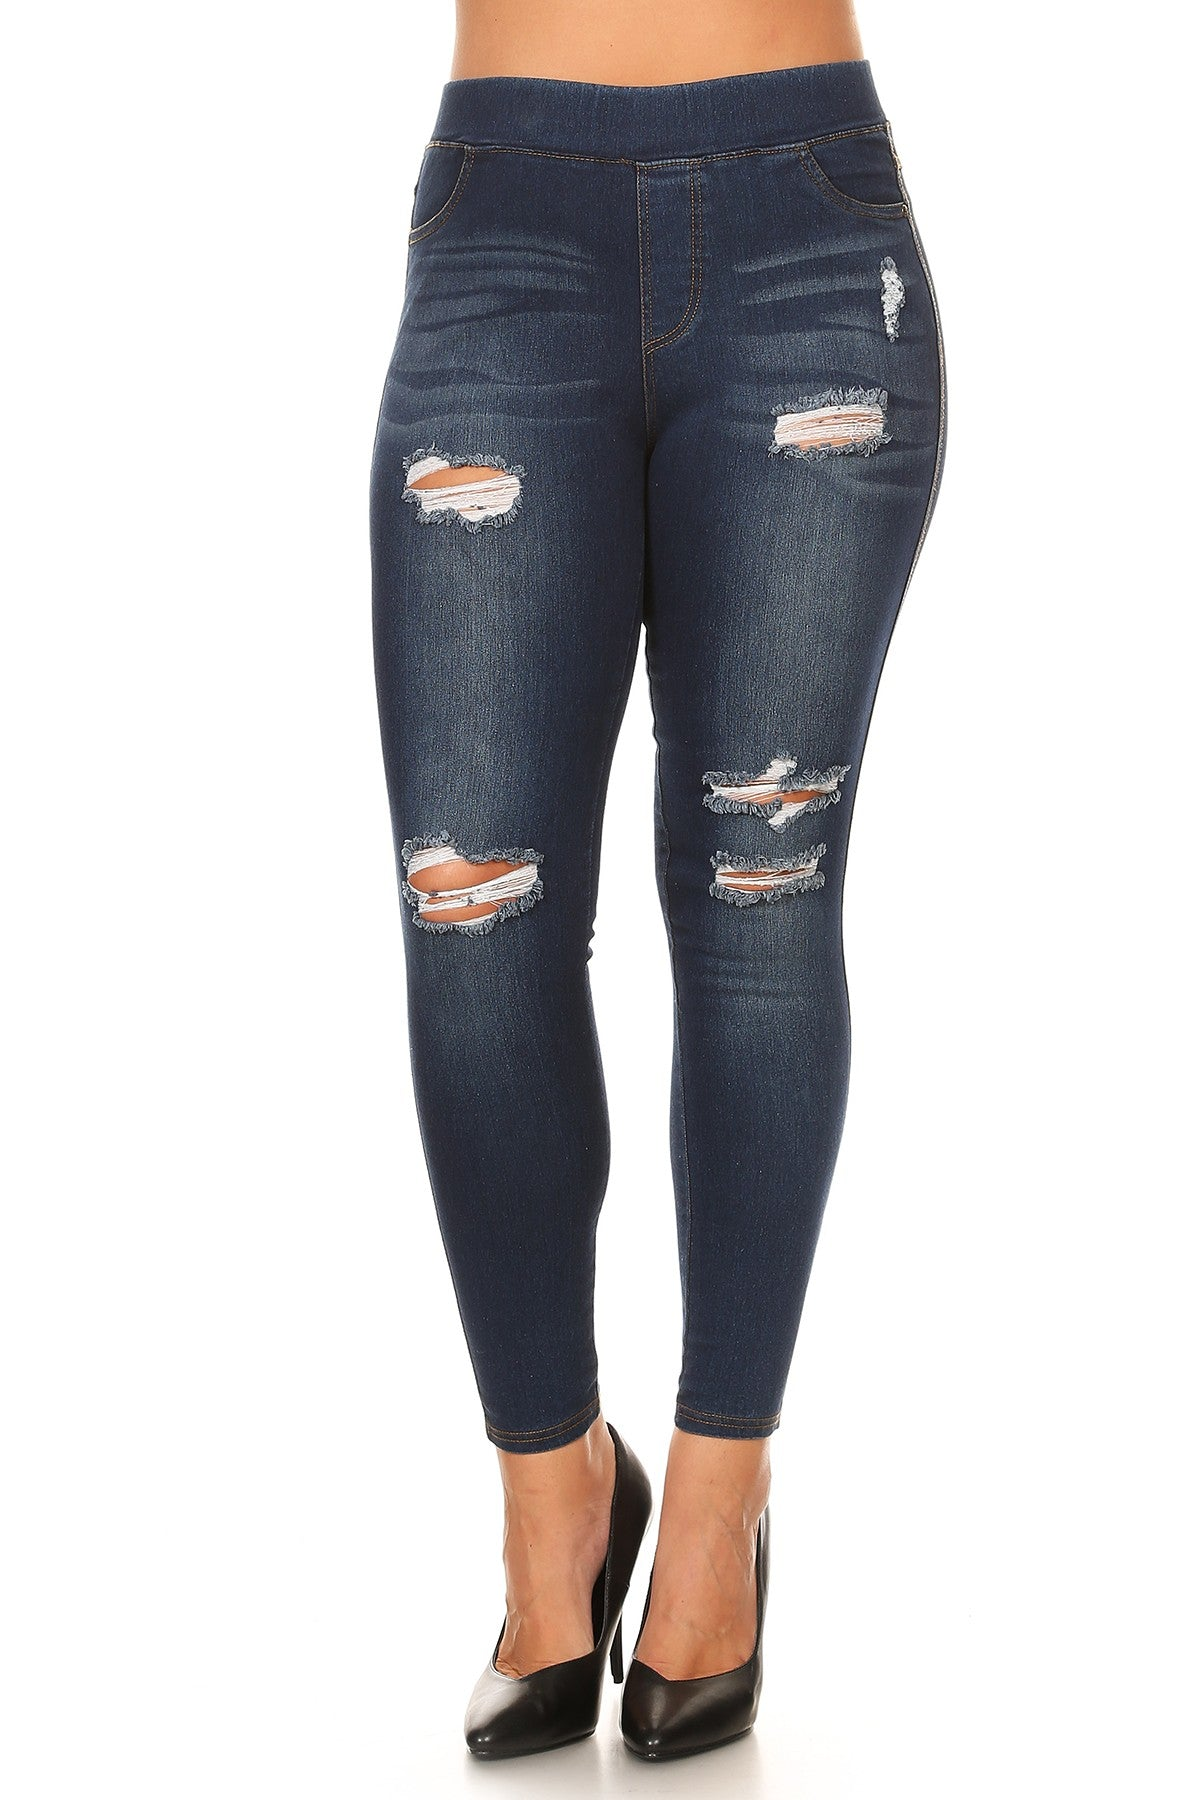 216eb1cc4e1ee Ripped Denim Enzyme Washed Jeggings in Dark Blue - Women s Plus Size –  Apple Girl Boutique